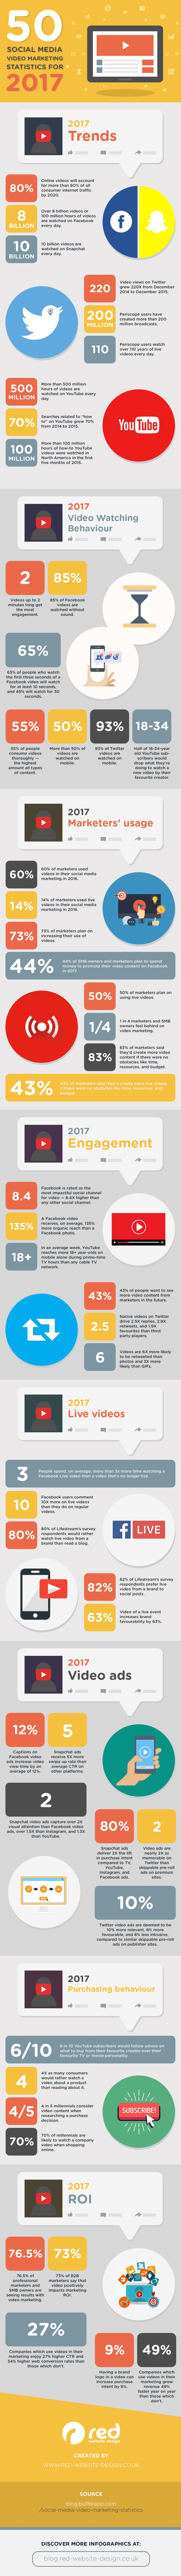 50 Social Media Video Marketing Stats for 2017 [Infographic]